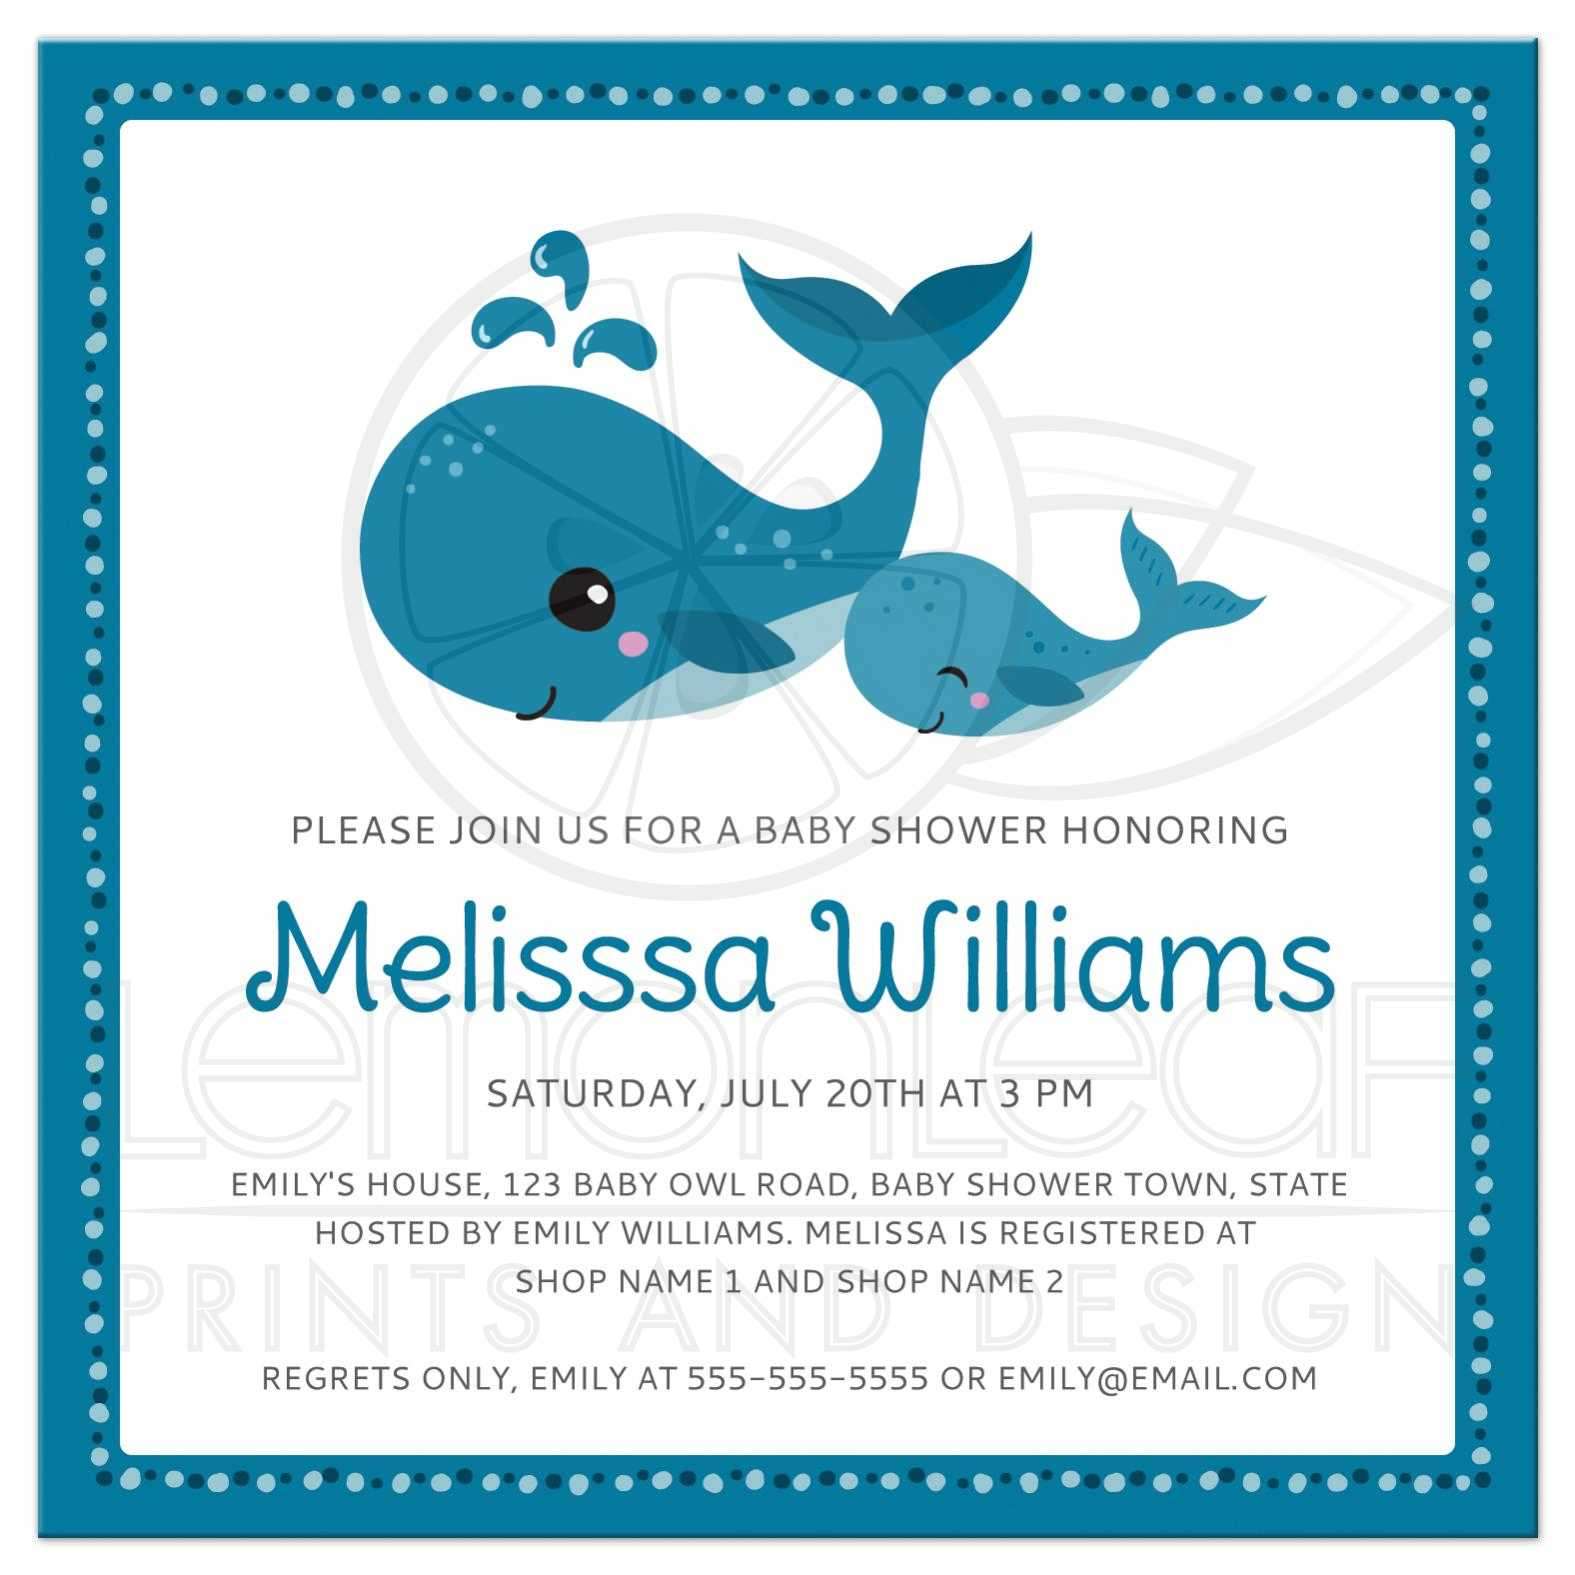 Mommy and baby whales cute baby shower invitation Under the sea